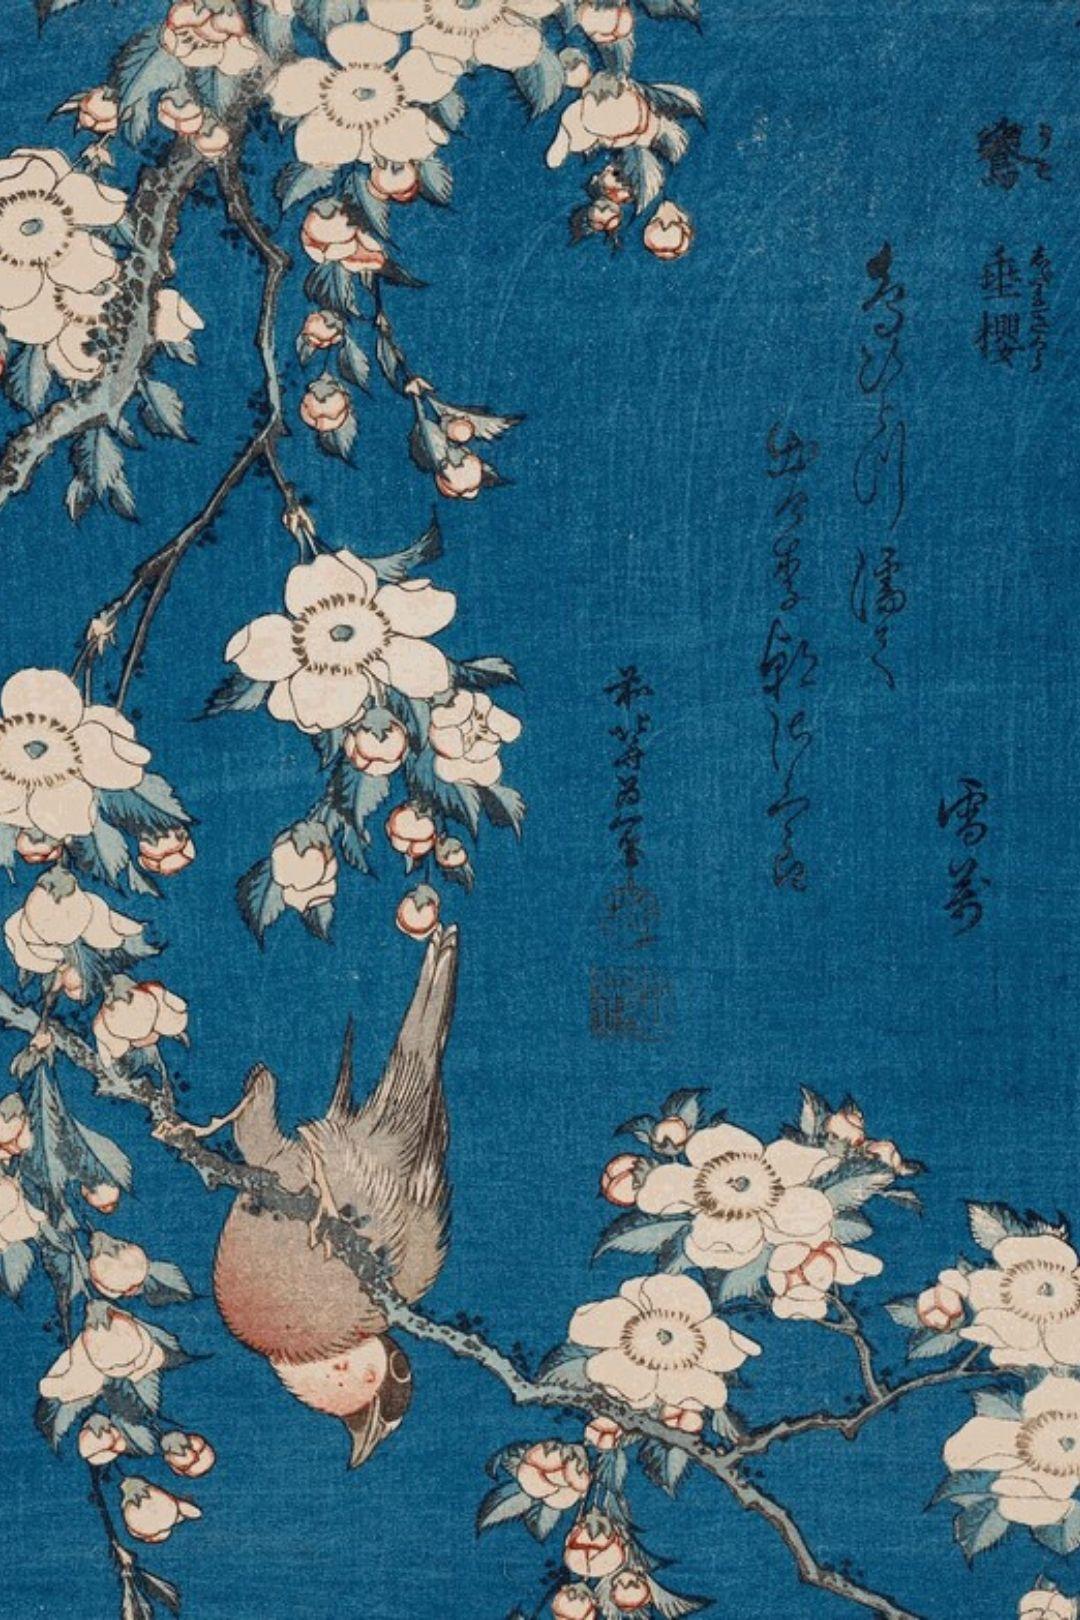 Weeping Cherry and Bullfinch (1834) by Hokusai